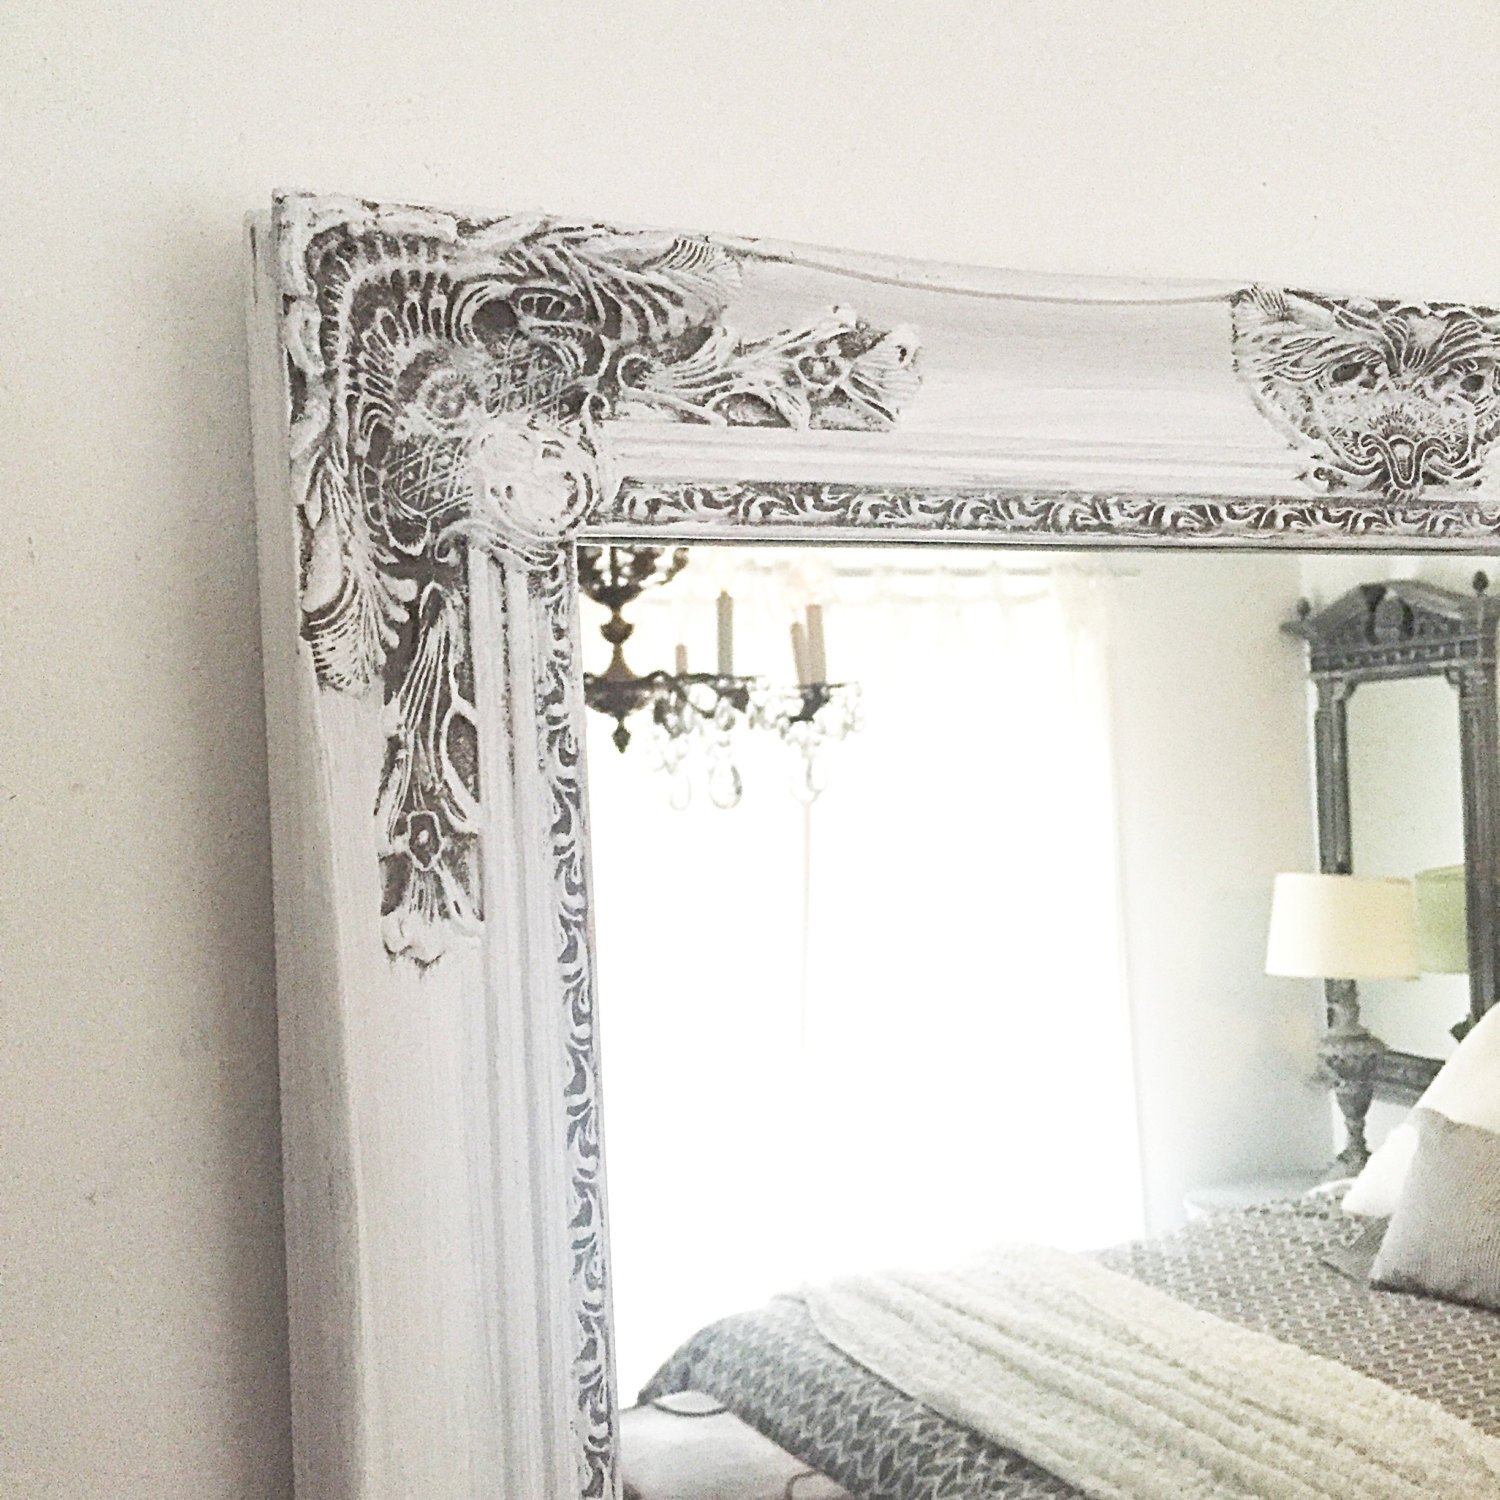 White Frame Etsy Intended For White Baroque Wall Mirror (Image 14 of 15)